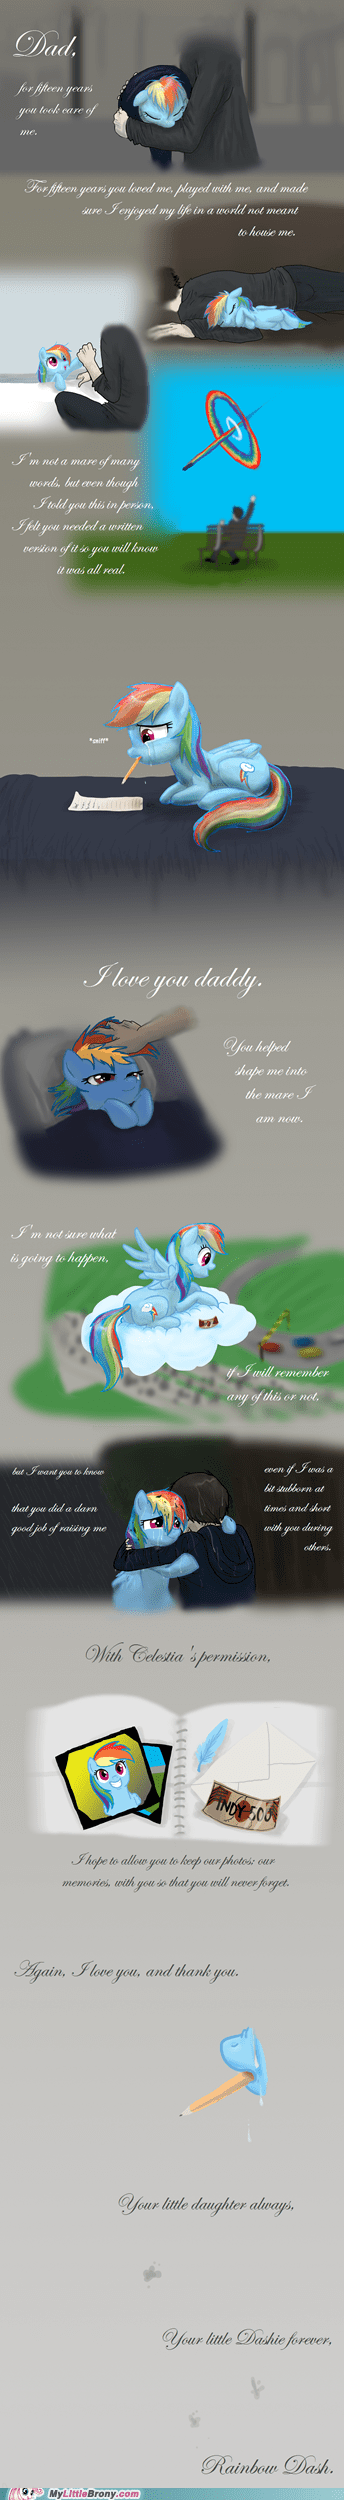 best of week comics fanfic my little dashie rainbow dash Sad tears - 5797083904